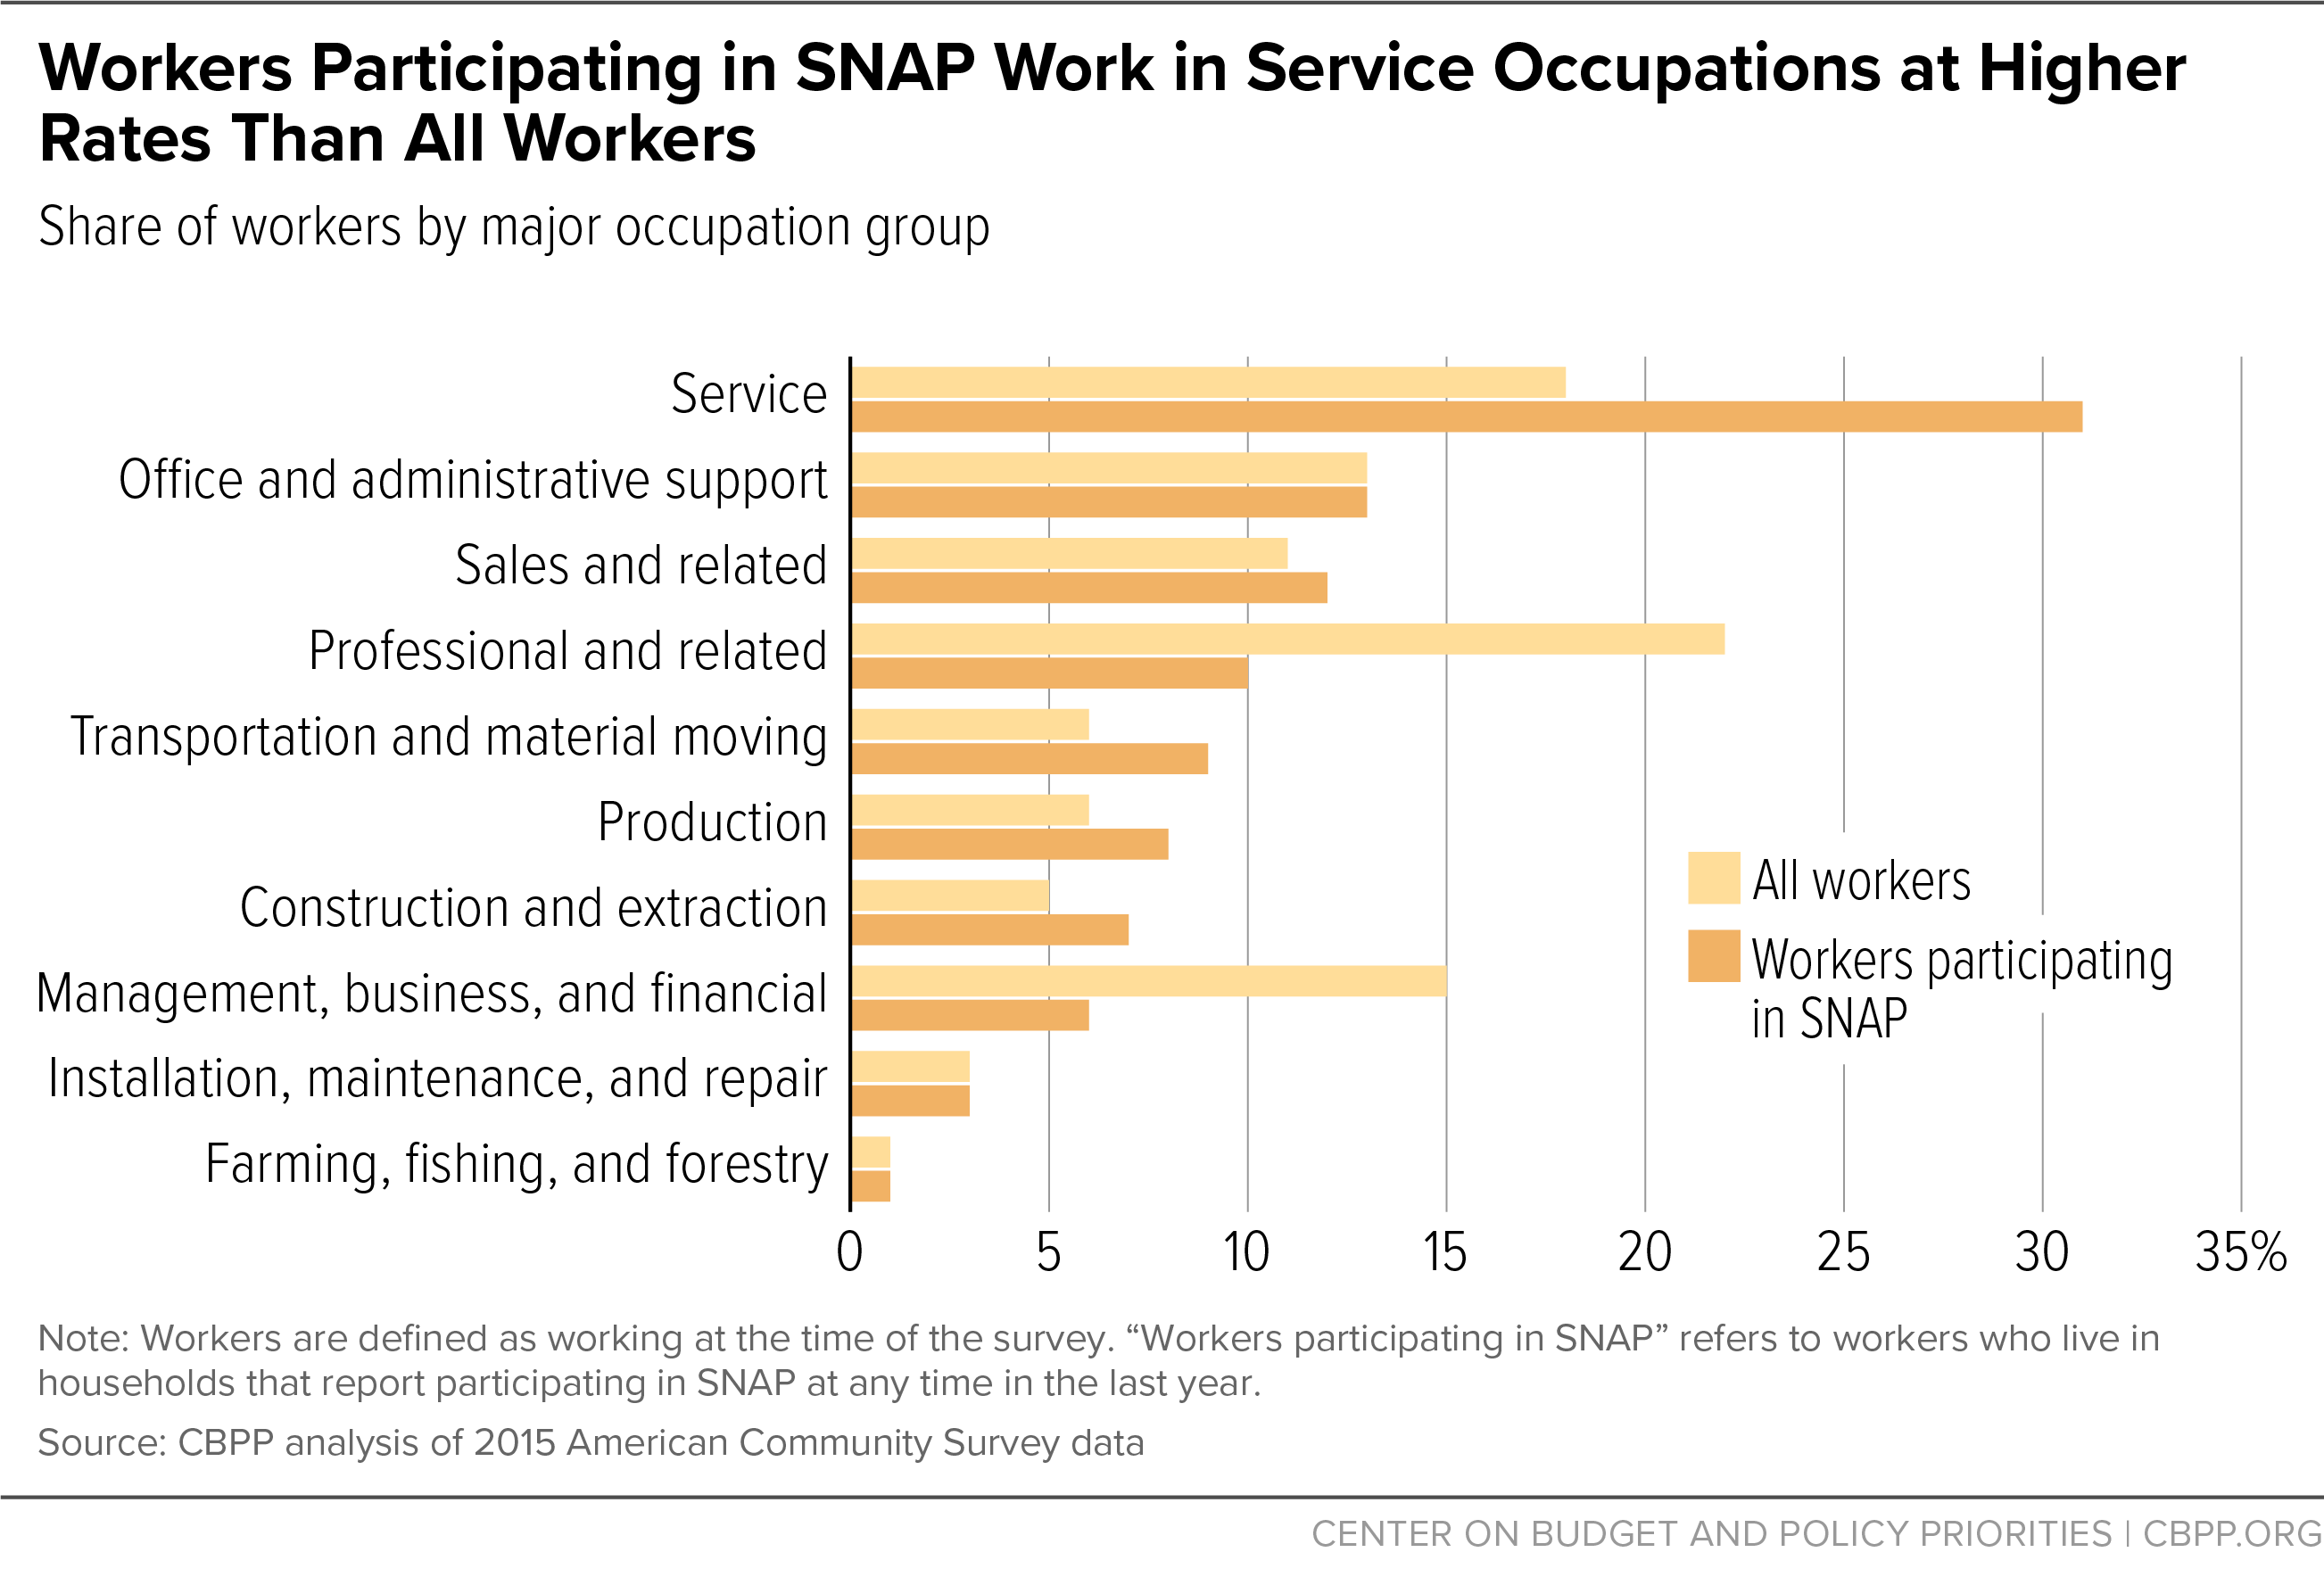 Workers Participating in SNAP Work in Service Occupations at Higher Rates Than All Workers